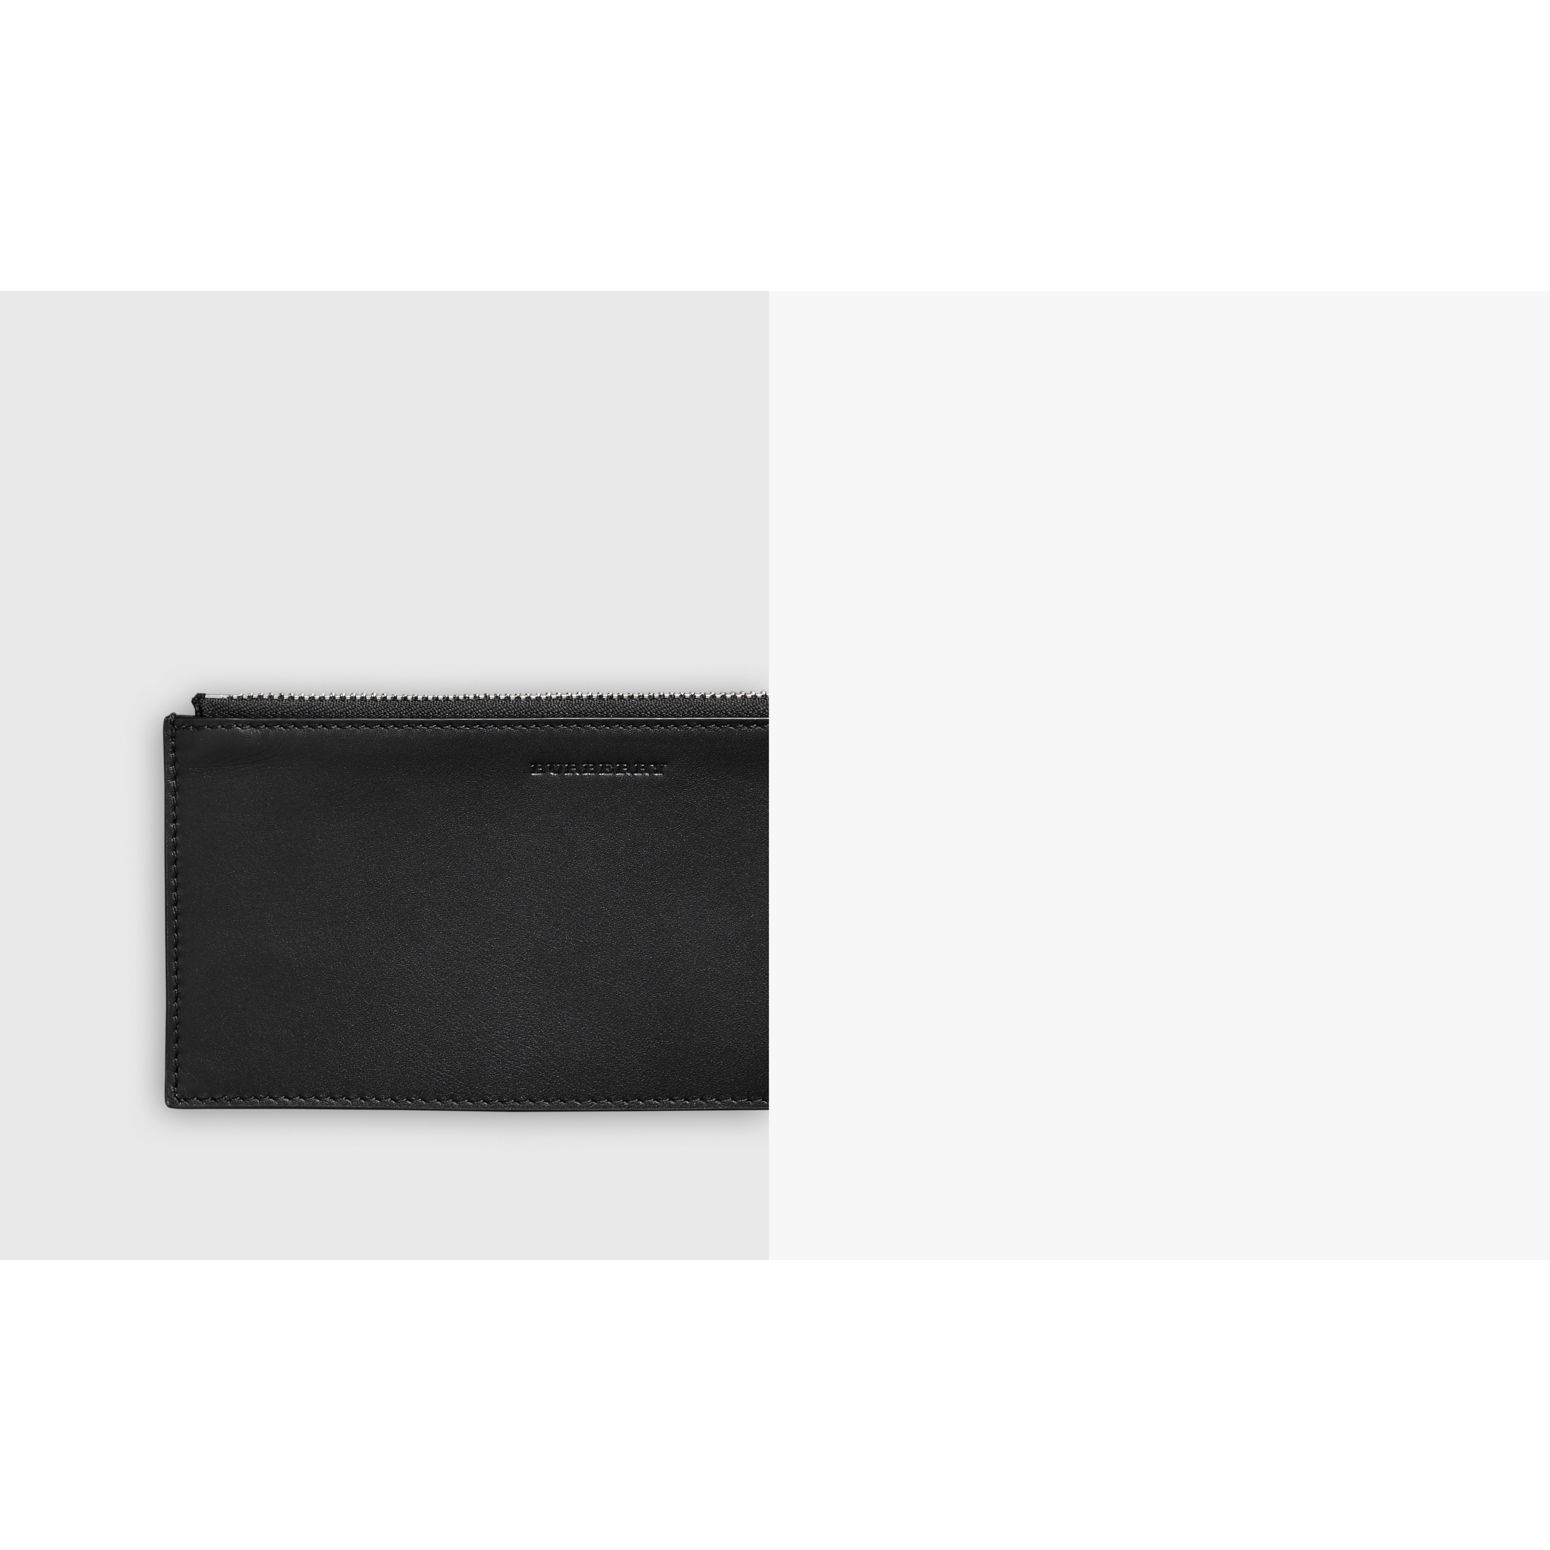 Two-tone Grainy Leather Travel Wallet in Black - Men | Burberry Australia - gallery image 1